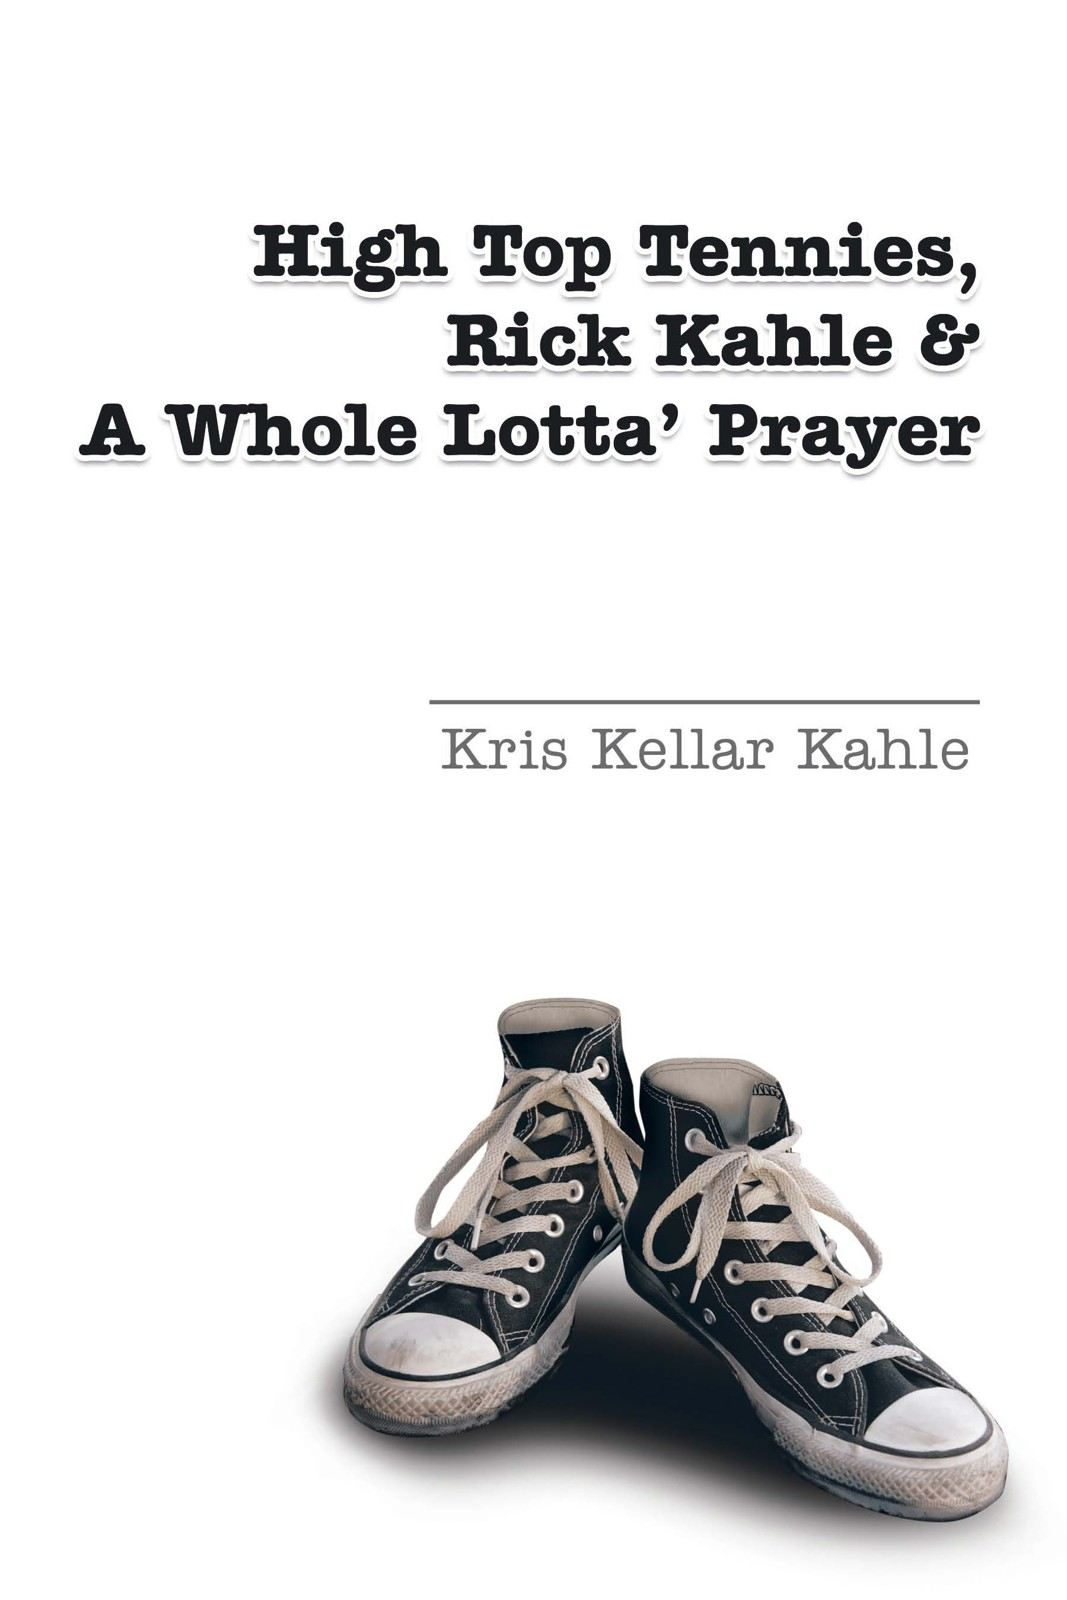 High Top Tennies, Rick Kahle and a Whole Lotta' Prayer By: Kris Kellar Kahle